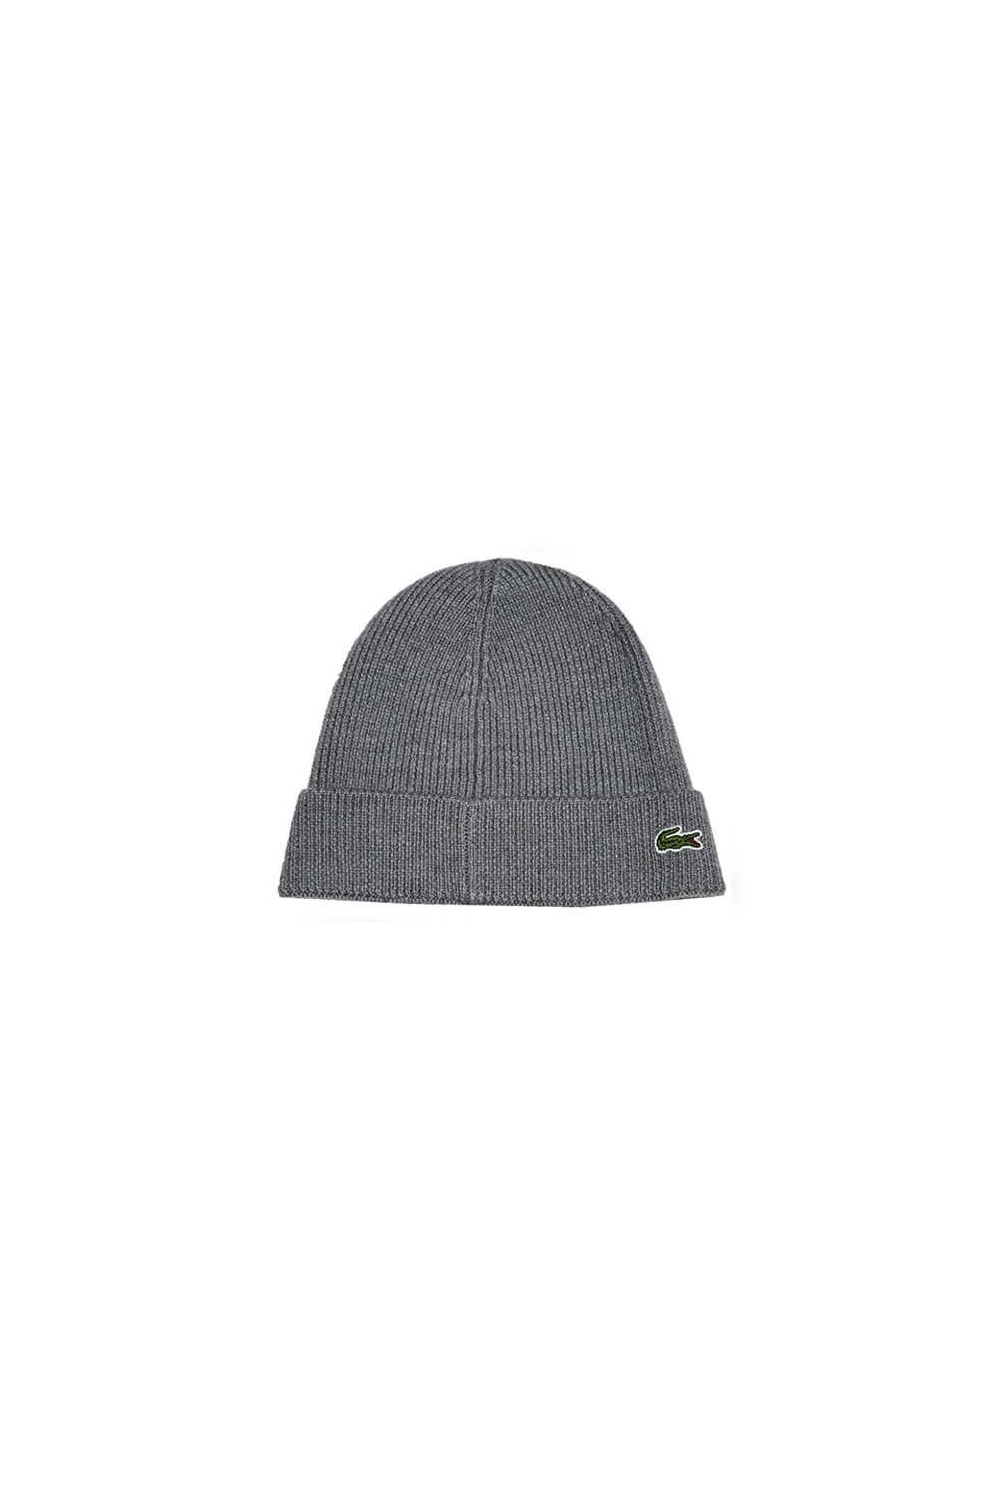 de7d425c89a Lacoste Beanie Hat in Grey RB3502 00 UWC